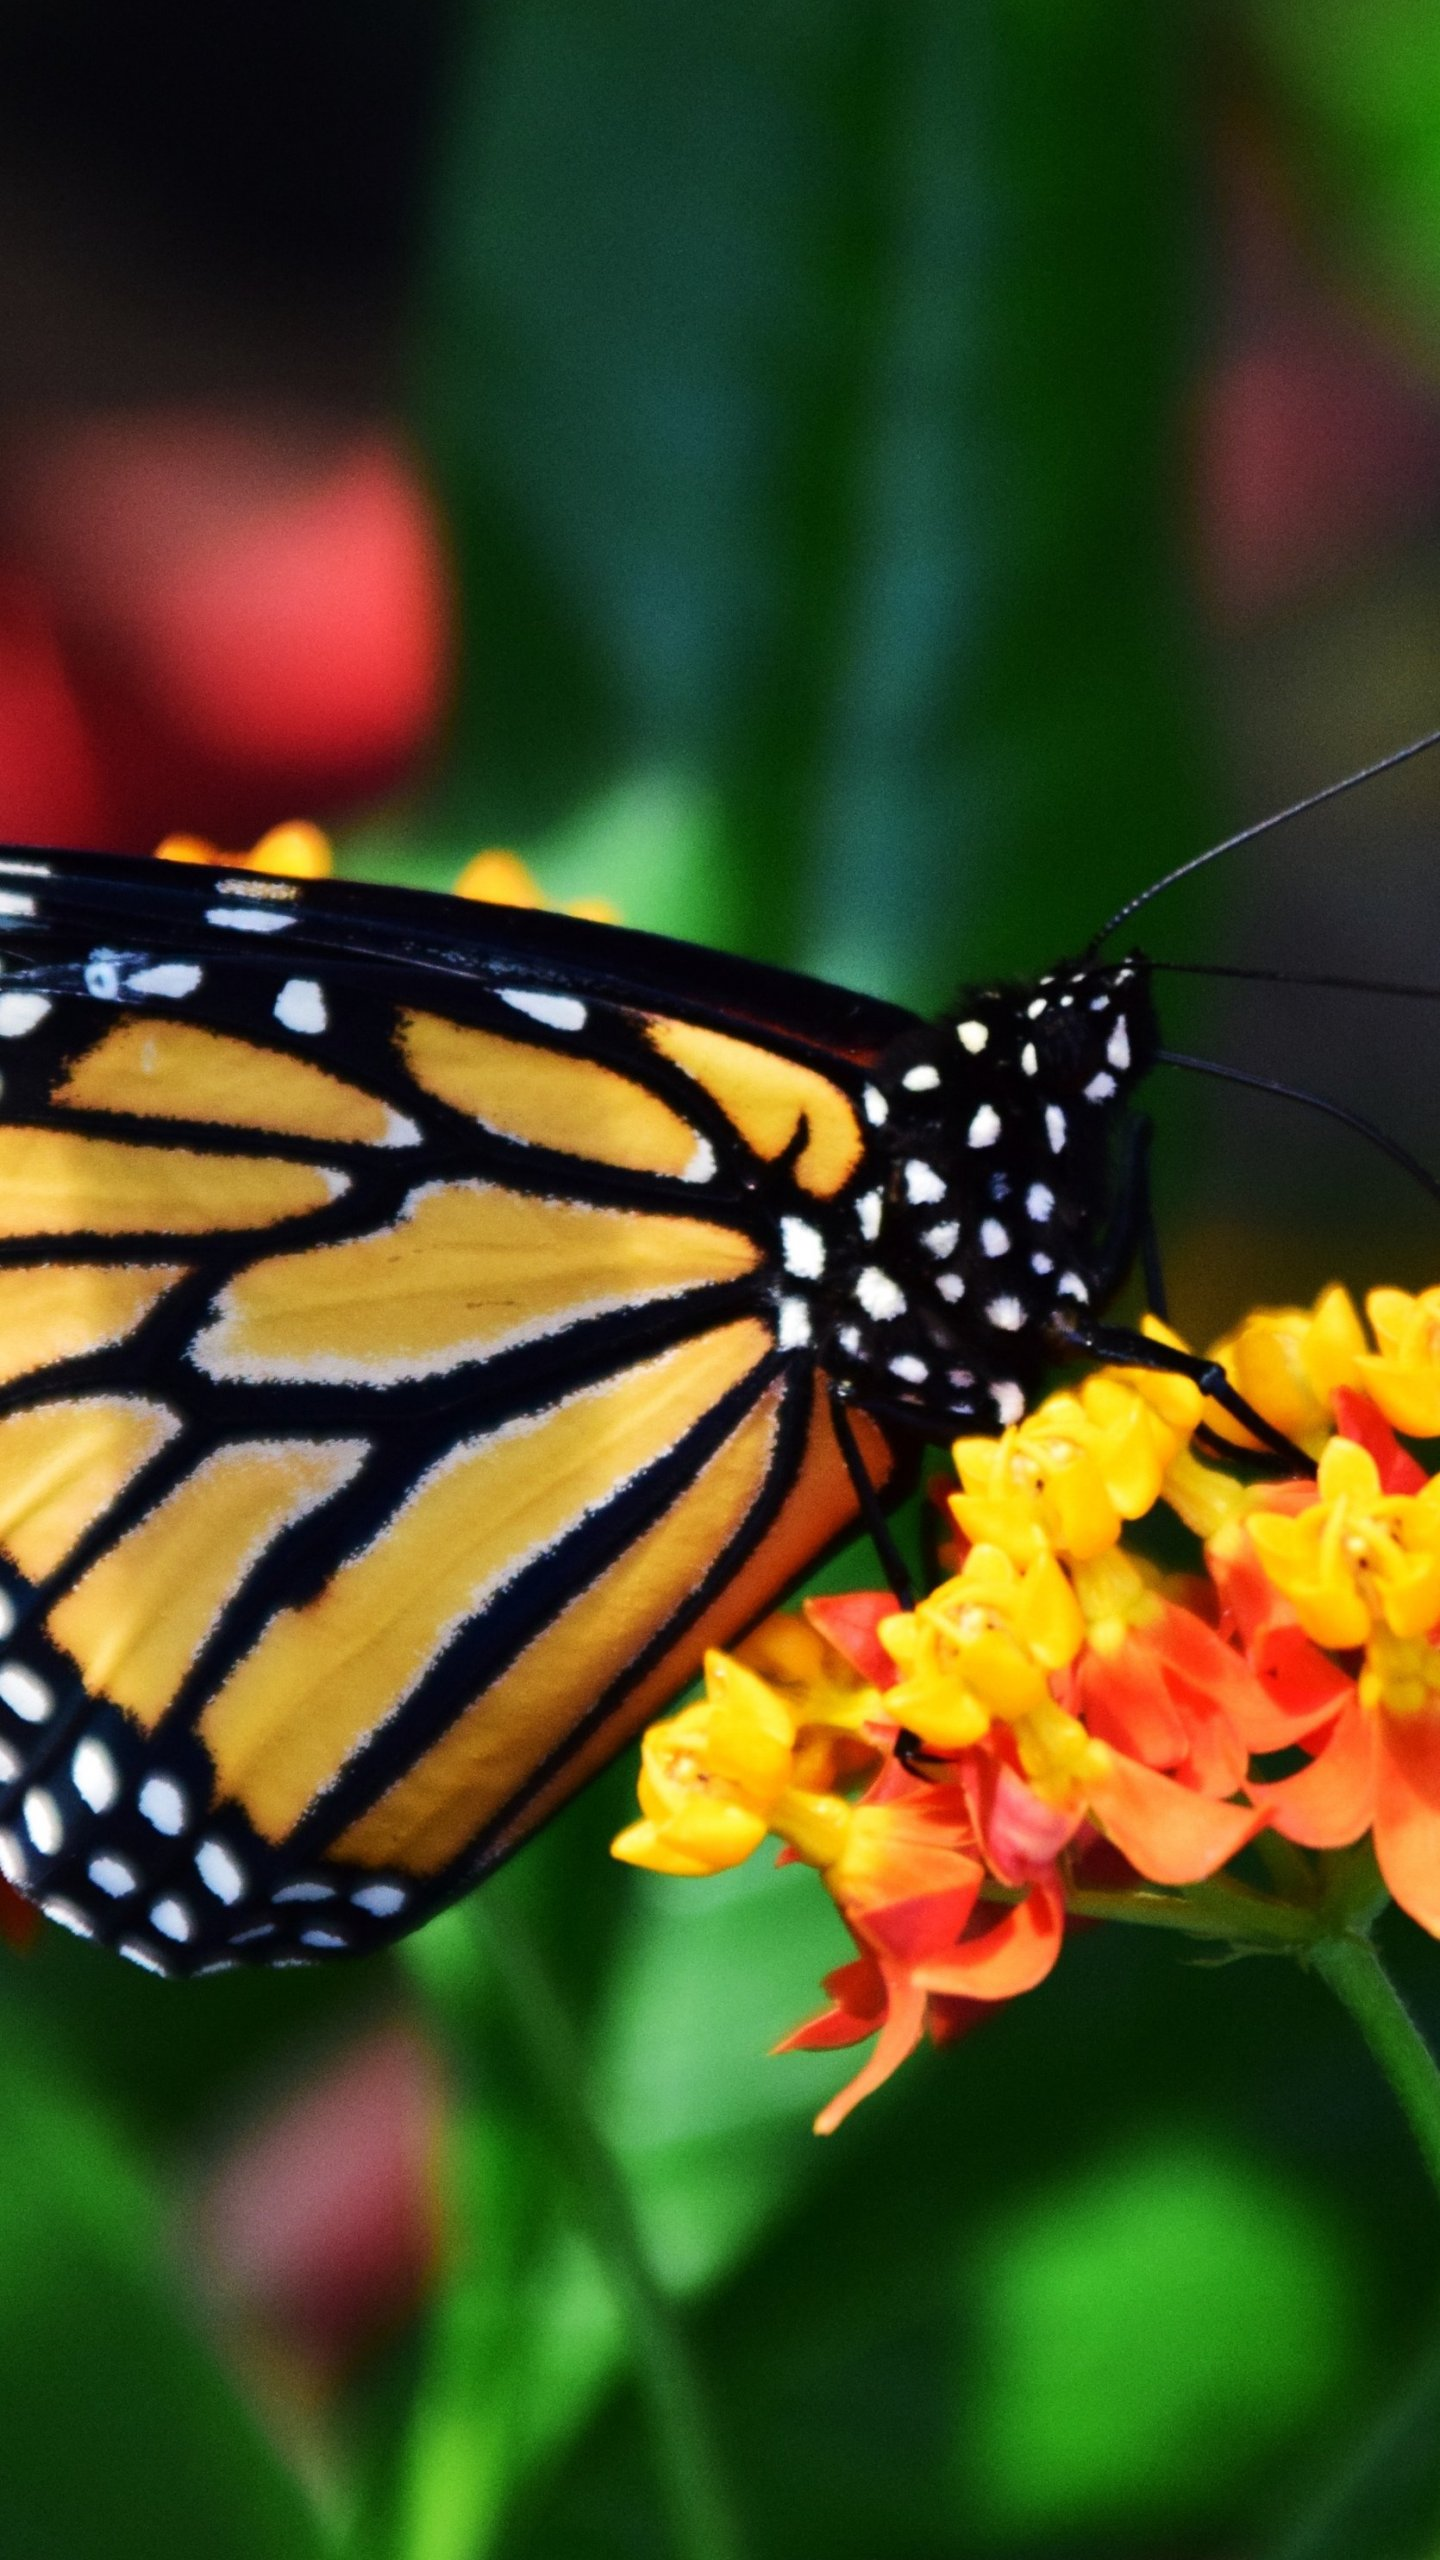 Monarch Butterfly Wallpaper   iPhone Android Desktop Backgrounds 1440x2560